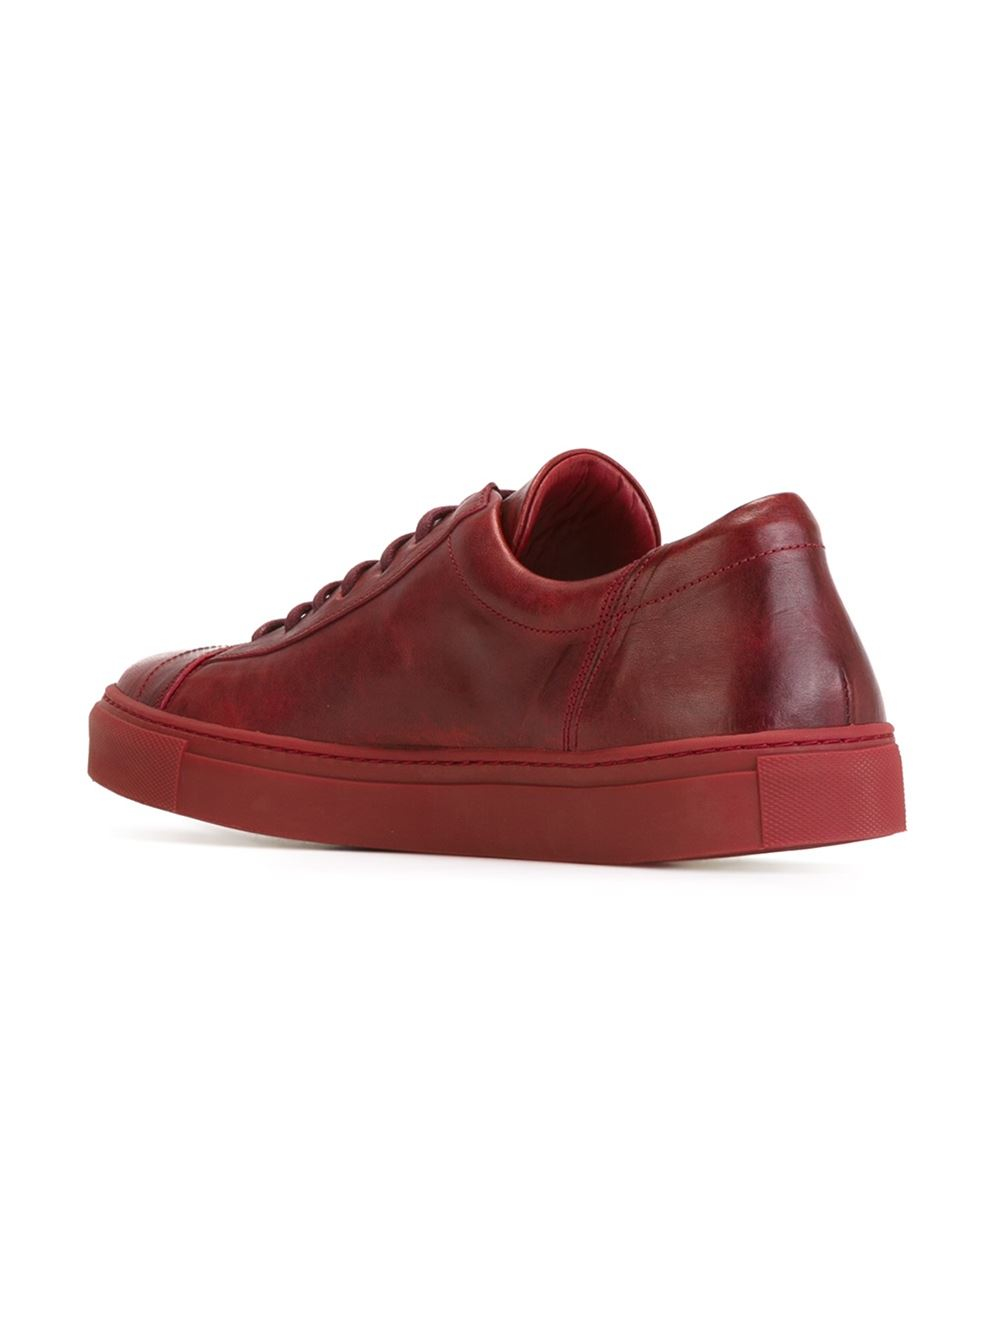 low priced 14416 3aa85 ... purchase lyst the last conspiracy edgar sneakers in red for men 850f5  53f17